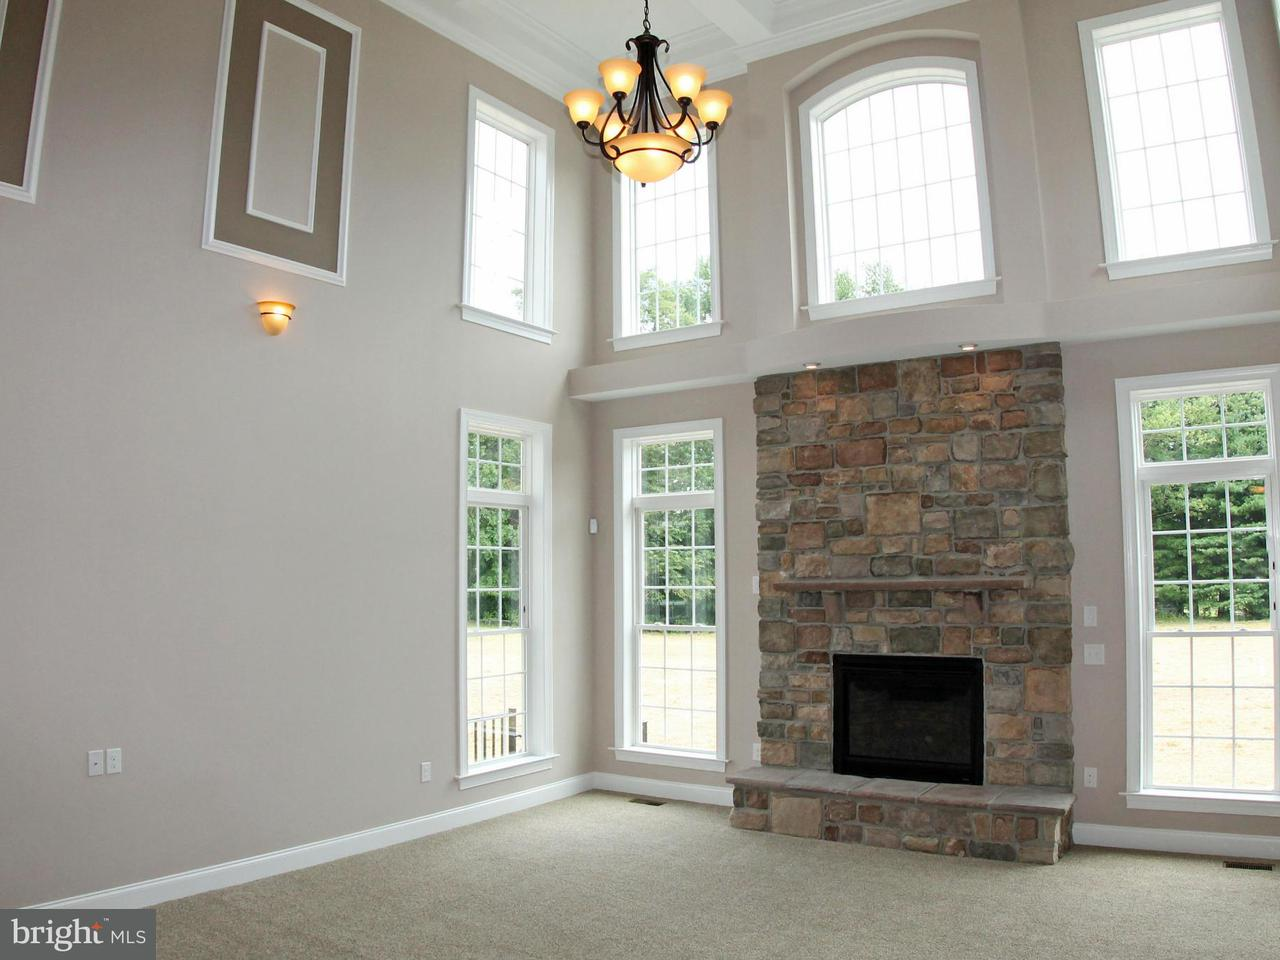 Additional photo for property listing at 2418 EDWARDS Lane 2418 EDWARDS Lane Churchville, メリーランド 21028 アメリカ合衆国